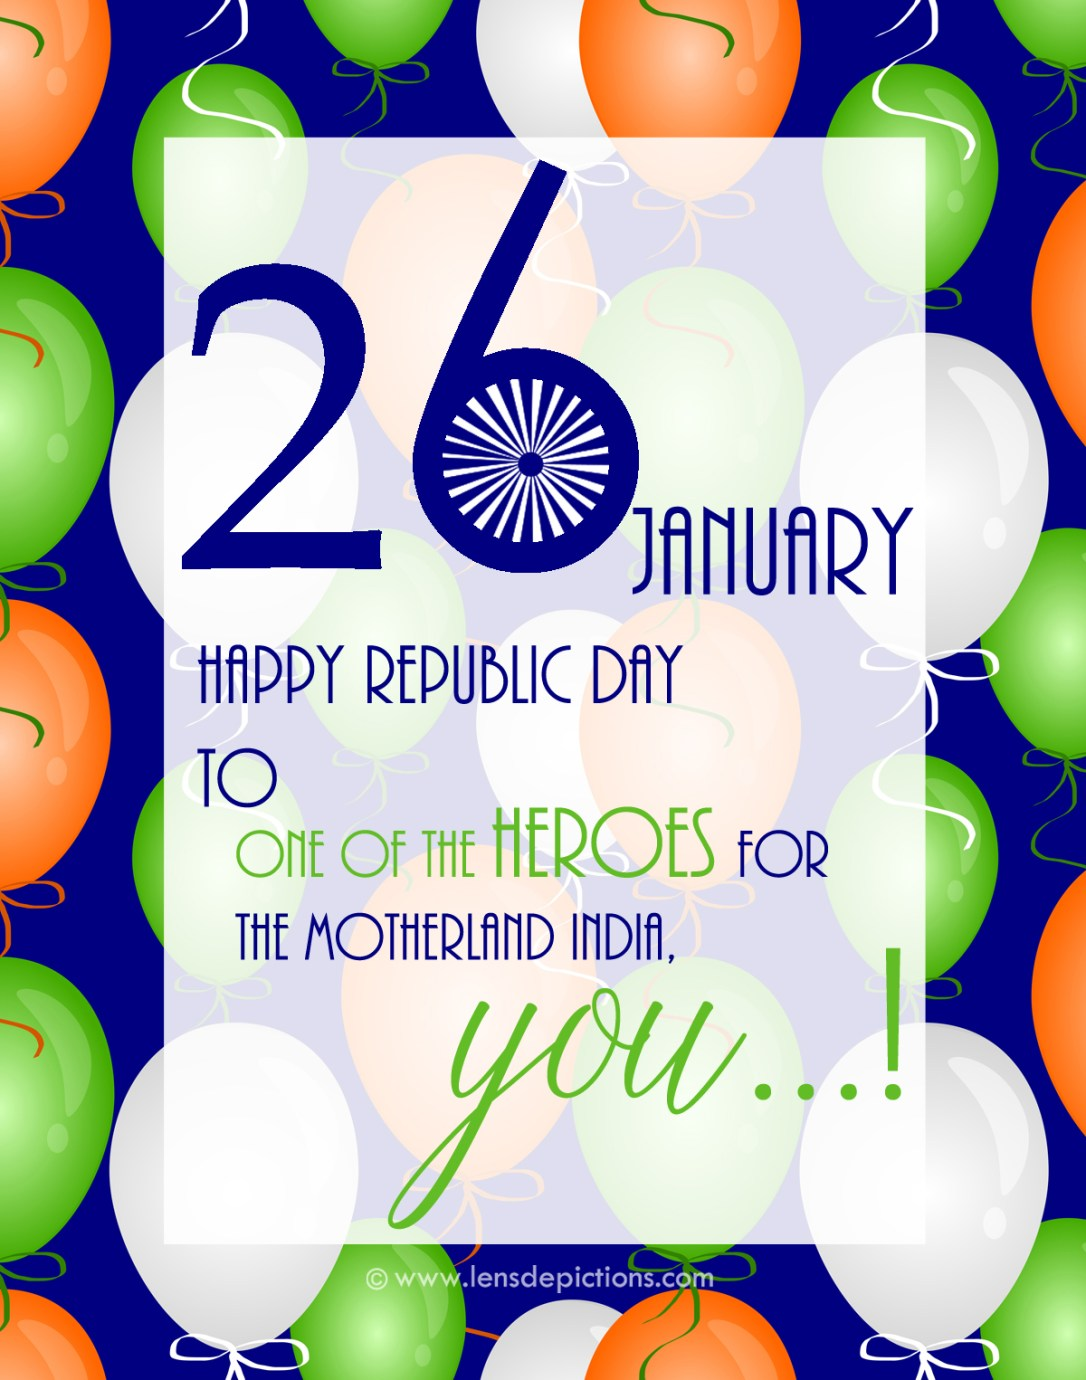 republicdaywish_lensdepictions